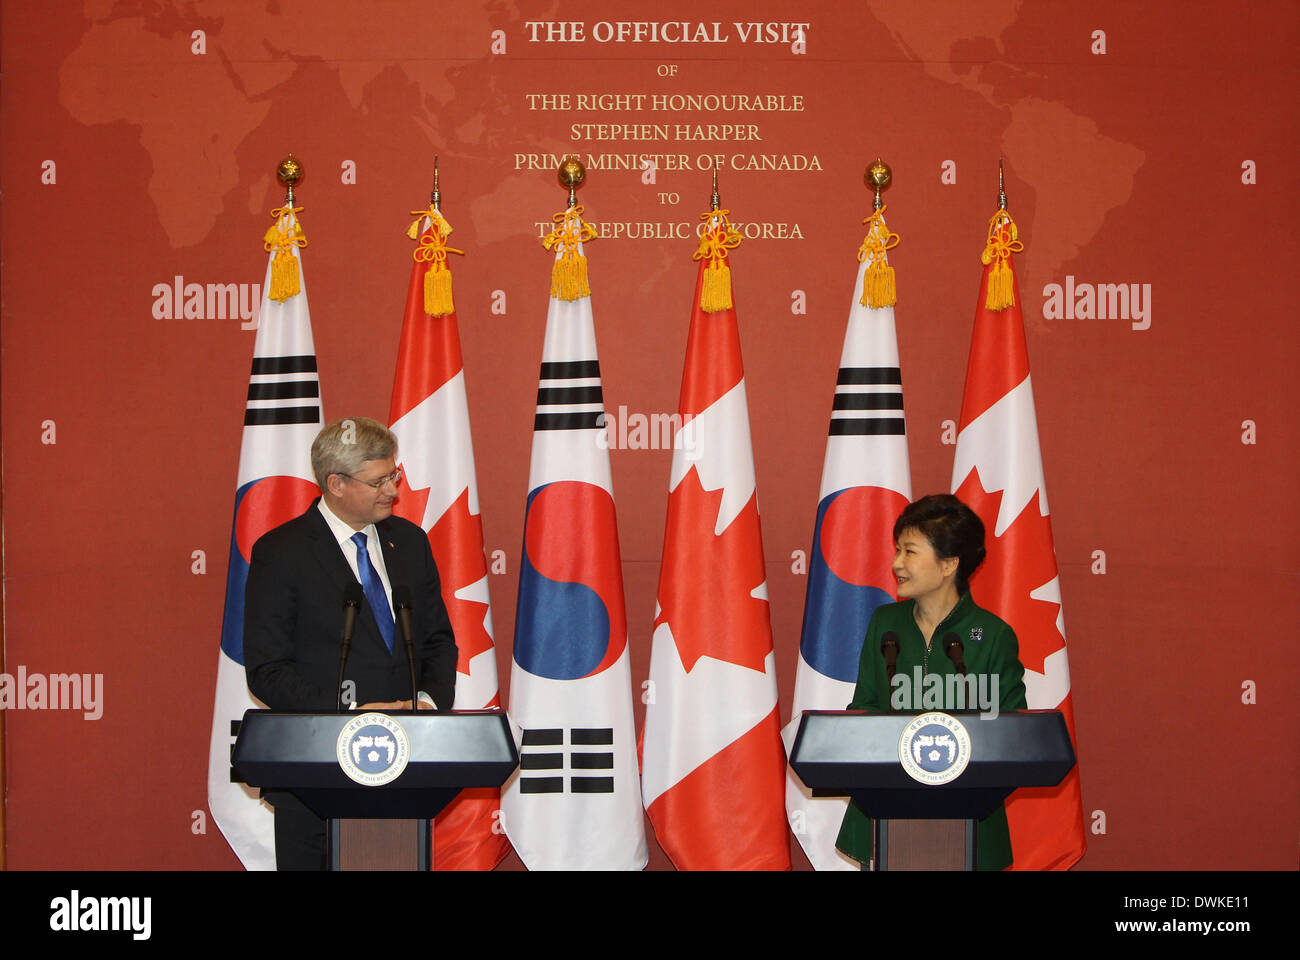 Seoul, South Korea. 11th Mar, 2014. South Korean President Park Geun-Hye (R) and Canadian Prime Minister Stephen Harper hold a joint press conference at the presidential Blue House in Seoul, South Korea, March 11, 2014. South Korea and Canada finalized years of negotiations on their free trade agreement (FTA) on Tuesday after talks between Park Geun-hye and Stephen Harper. © Park Jin-hee/Xinhua/Alamy Live News - Stock Image